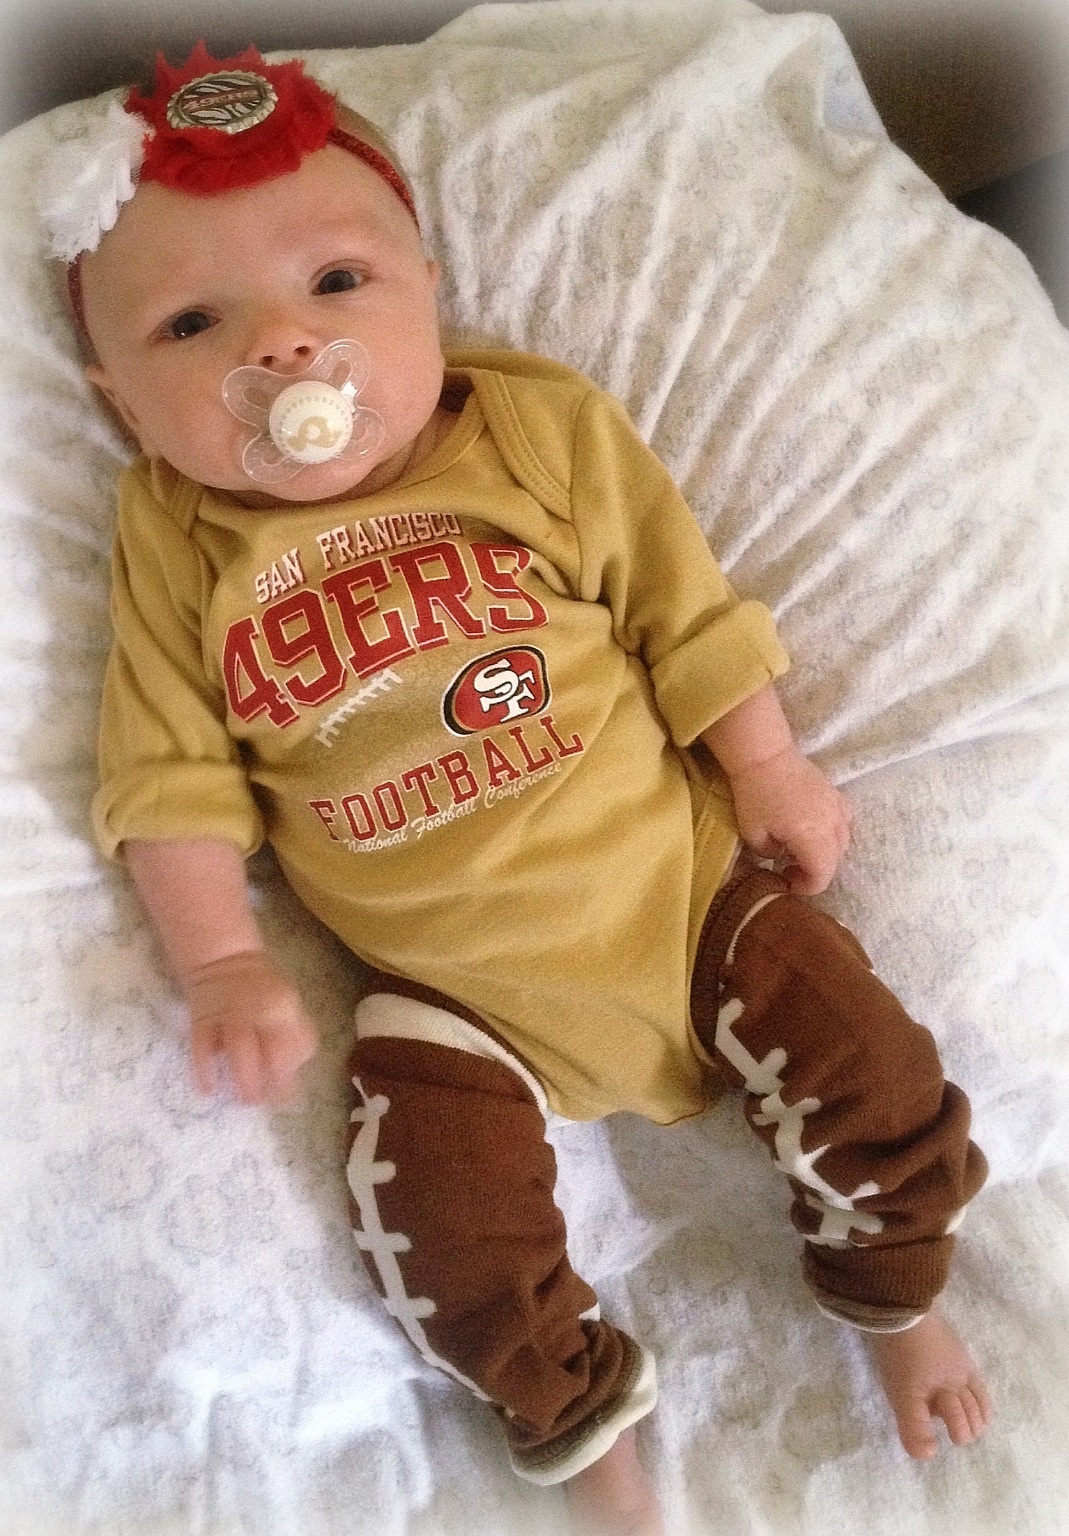 San Francisco 49ers images Giada loves her 49ers HD wallpaper and background photos